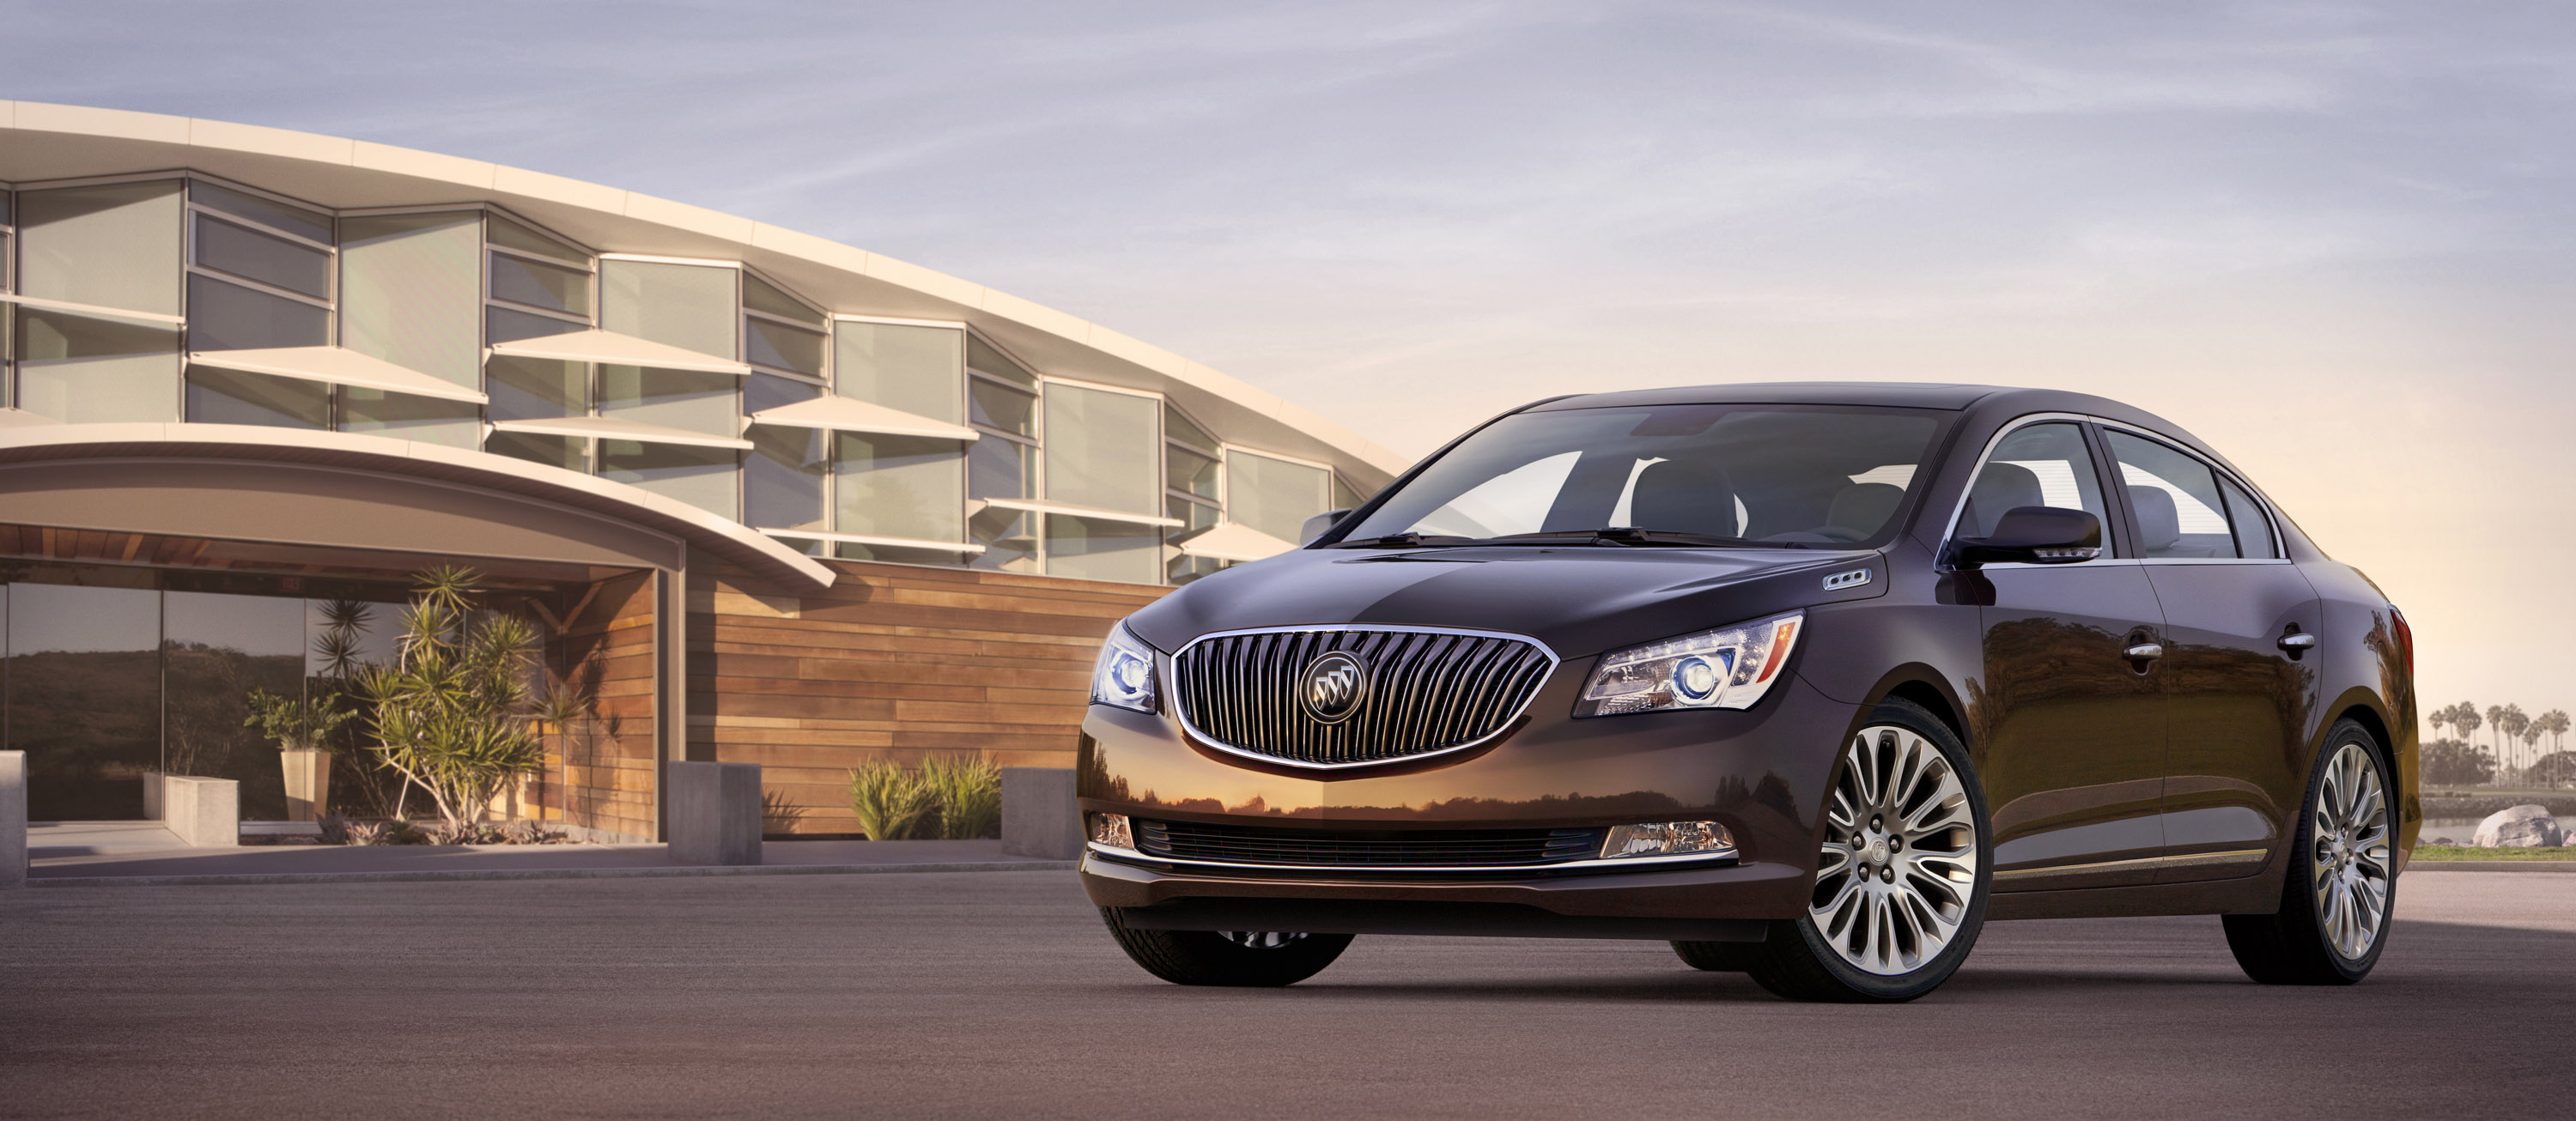 and lineup of buick vehicles new scenic ocean suvs a at sunset on for used trucks overlook owned the by cars sale pre key